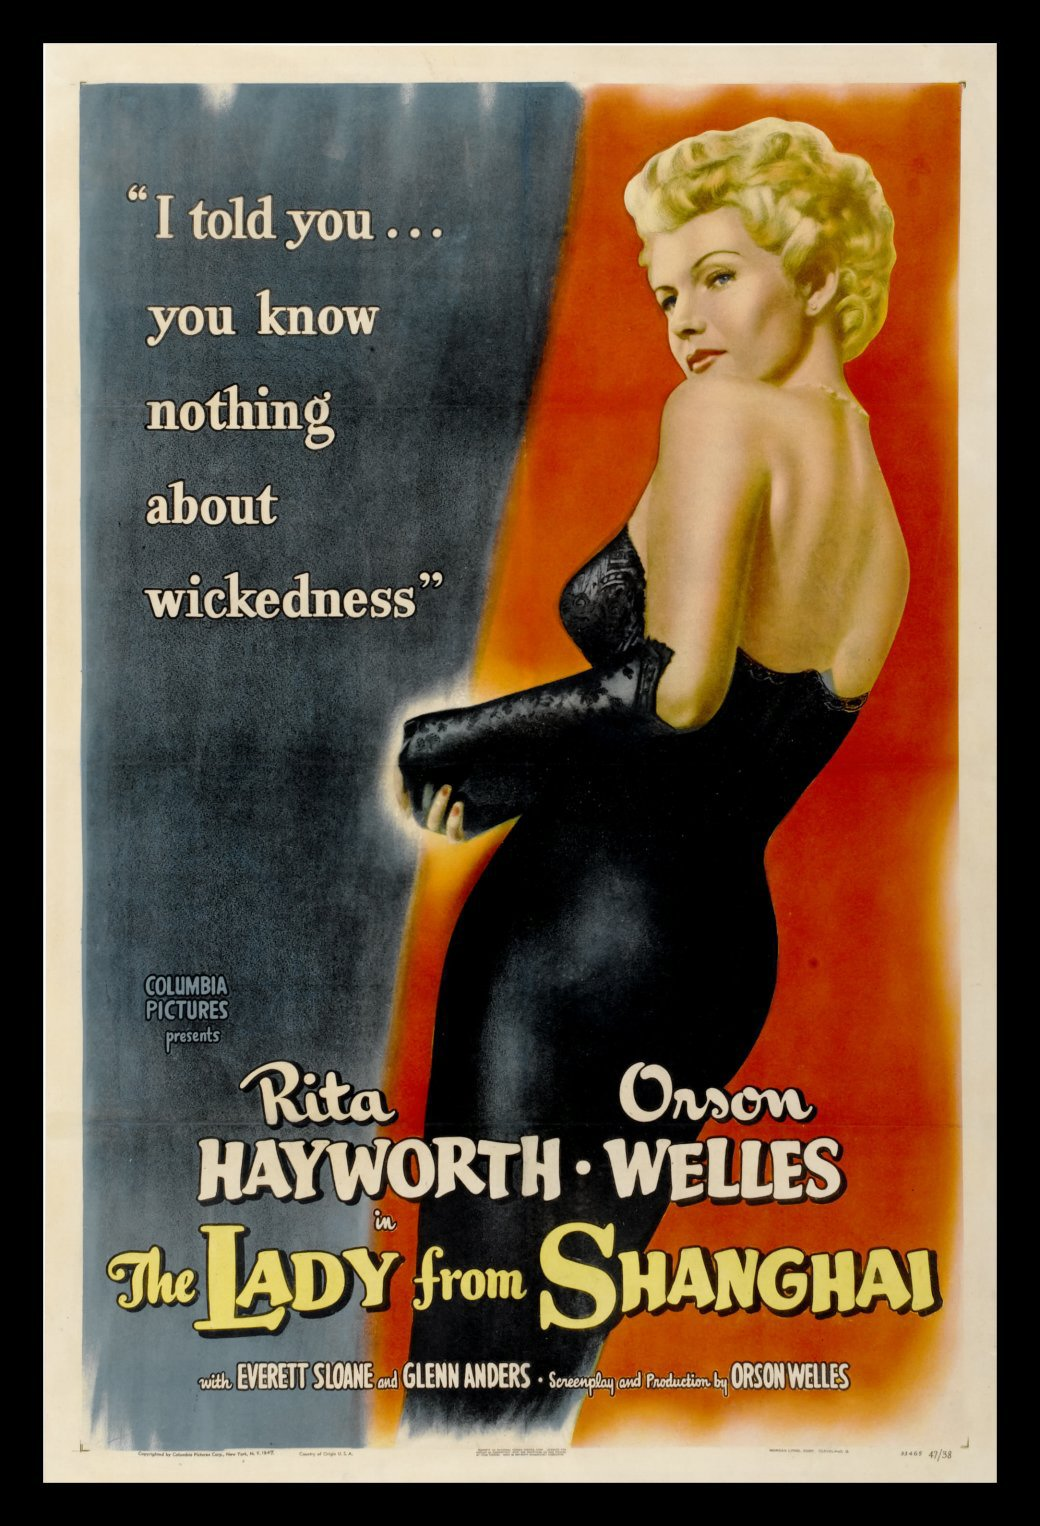 the lady from shanghai film The lady from shanghai free movie with english subtitles watch the lady from shanghai putlocker, 123movies and xmovies in hd quality free online, the lady from shanghai full movie with fast hd streaming, download the lady from shanghai movie.